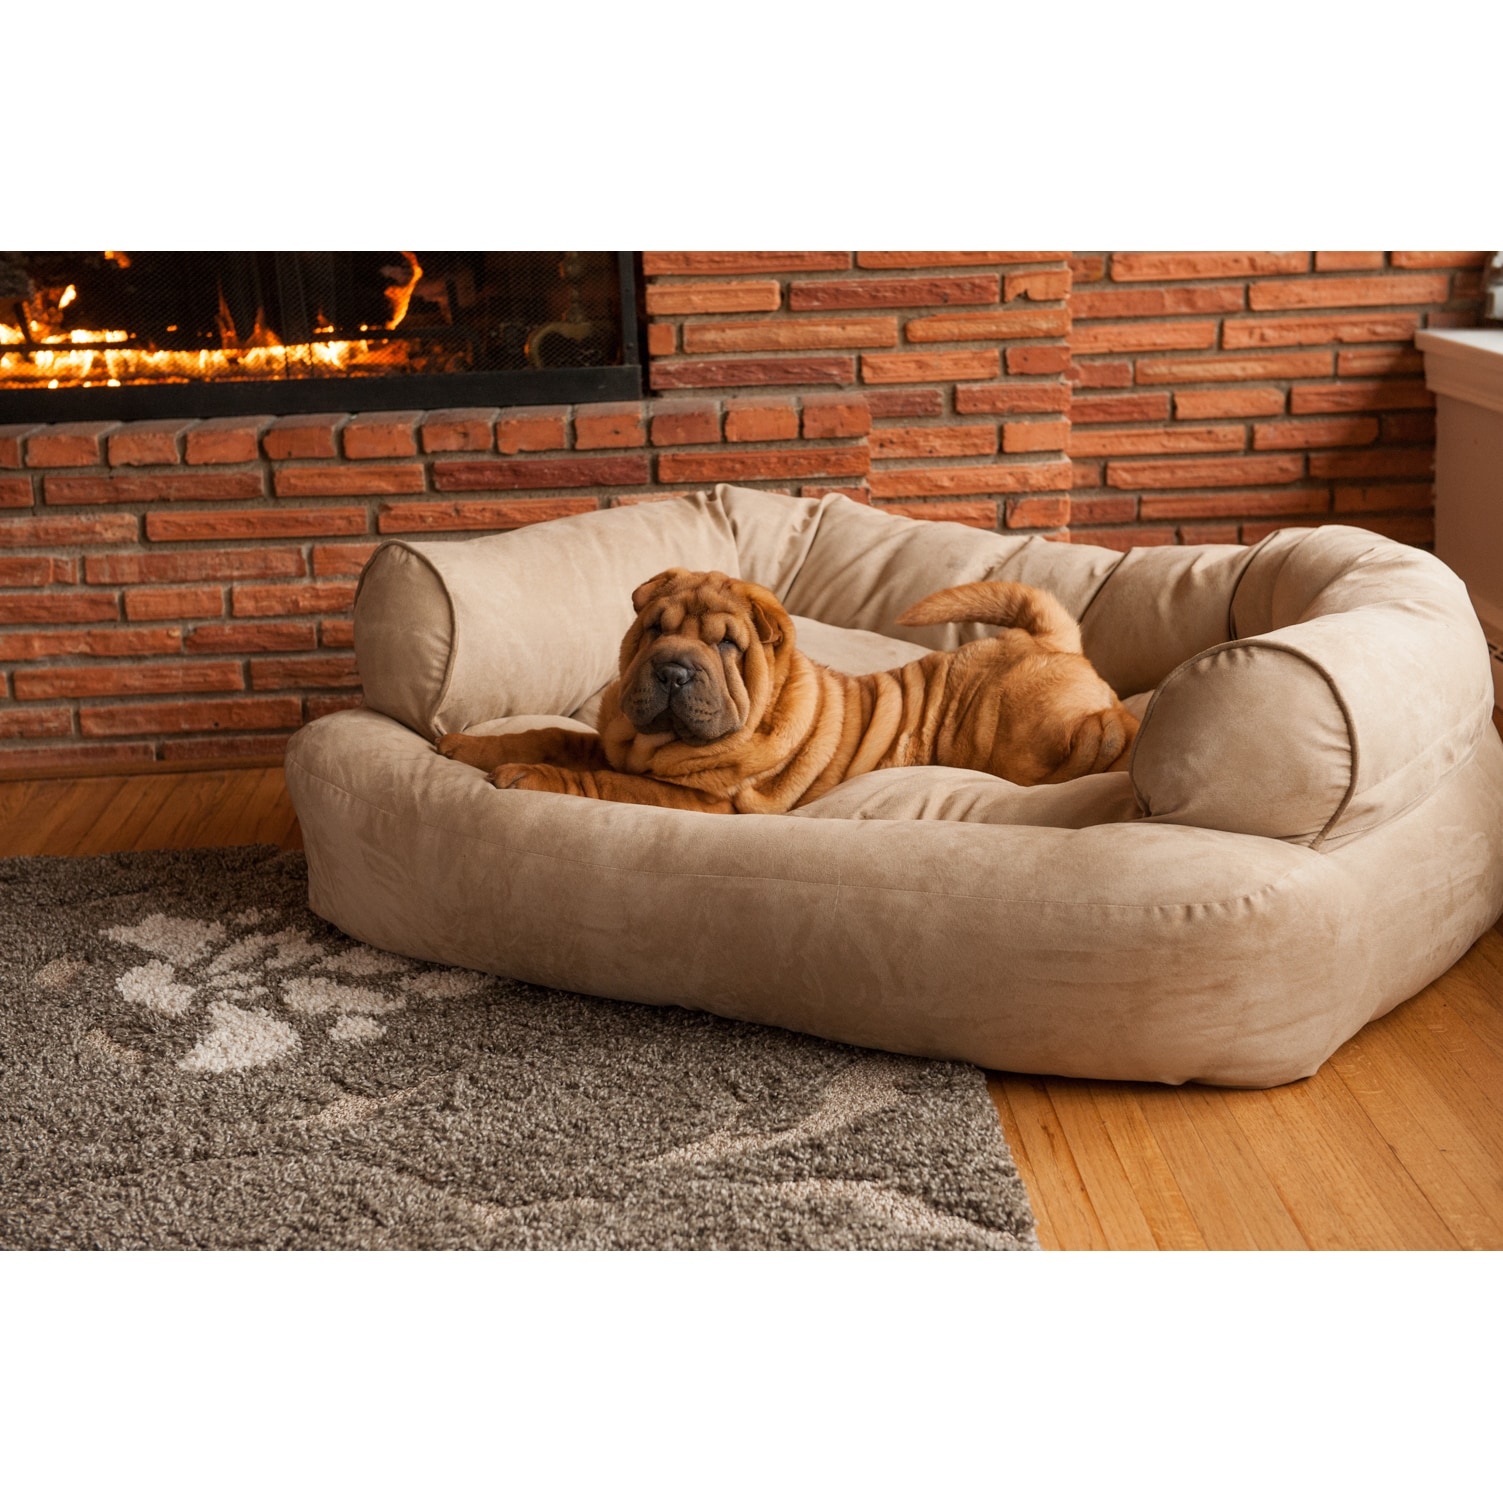 Snoozer Overstuffed Solid Microsede Luxury Pet Sofa Free Shipping Today 14309988